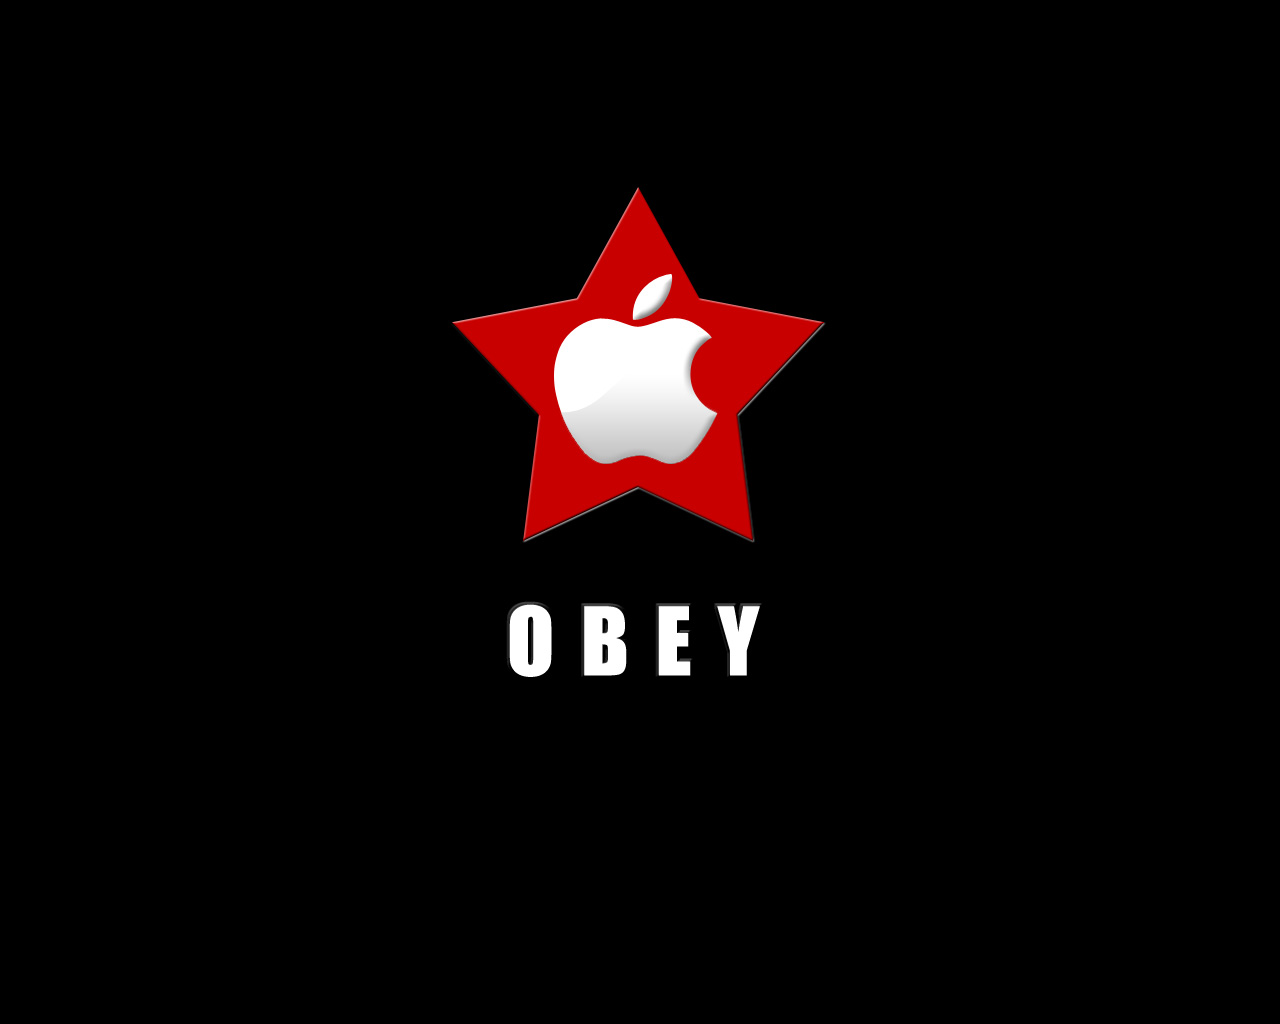 1280x1024 Obey Wallpaper - Wallpapers Browse